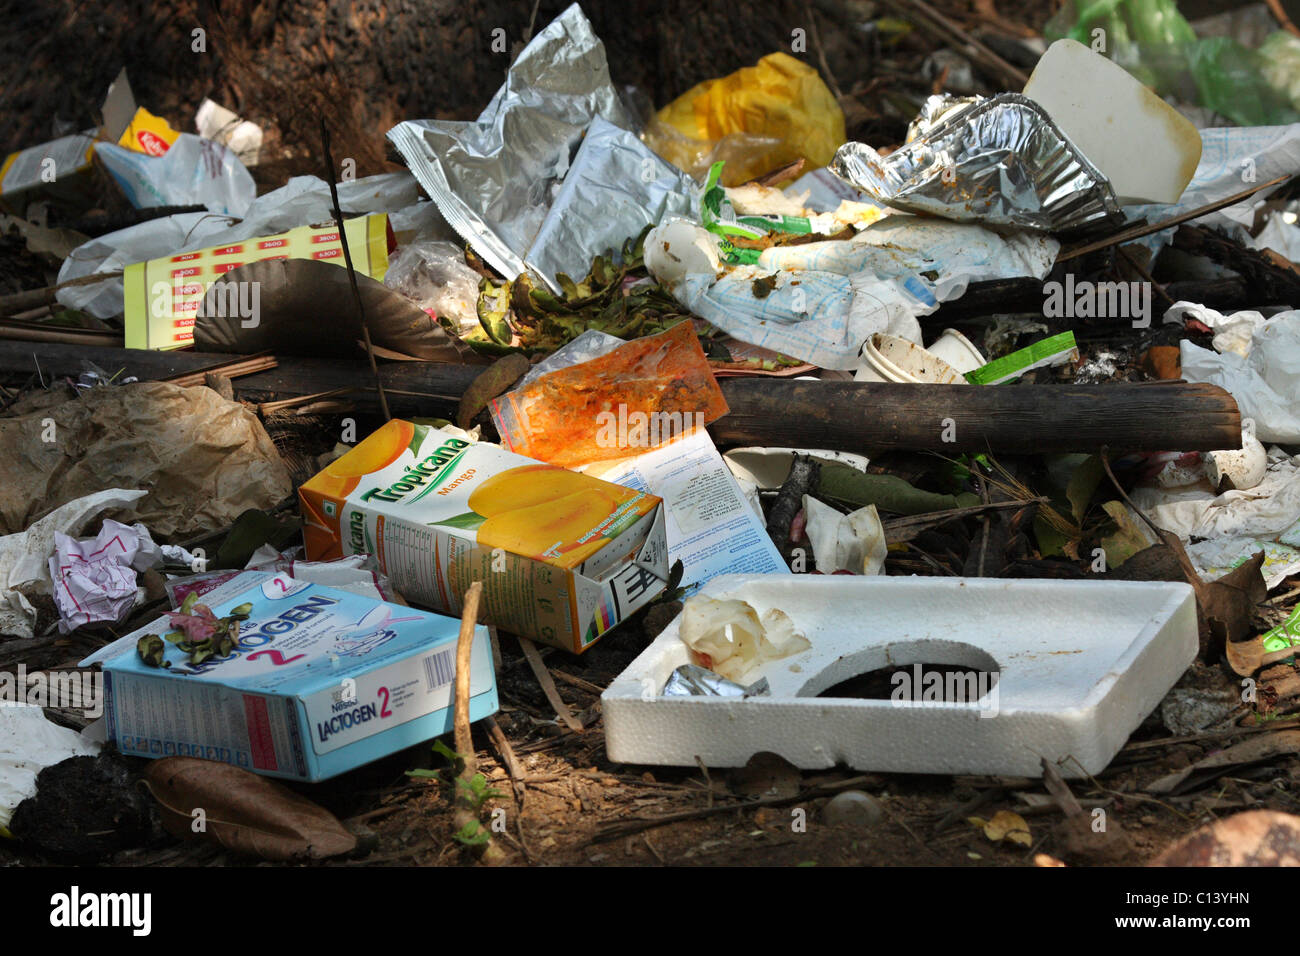 different types of garbages dumped carelessly - Stock Image